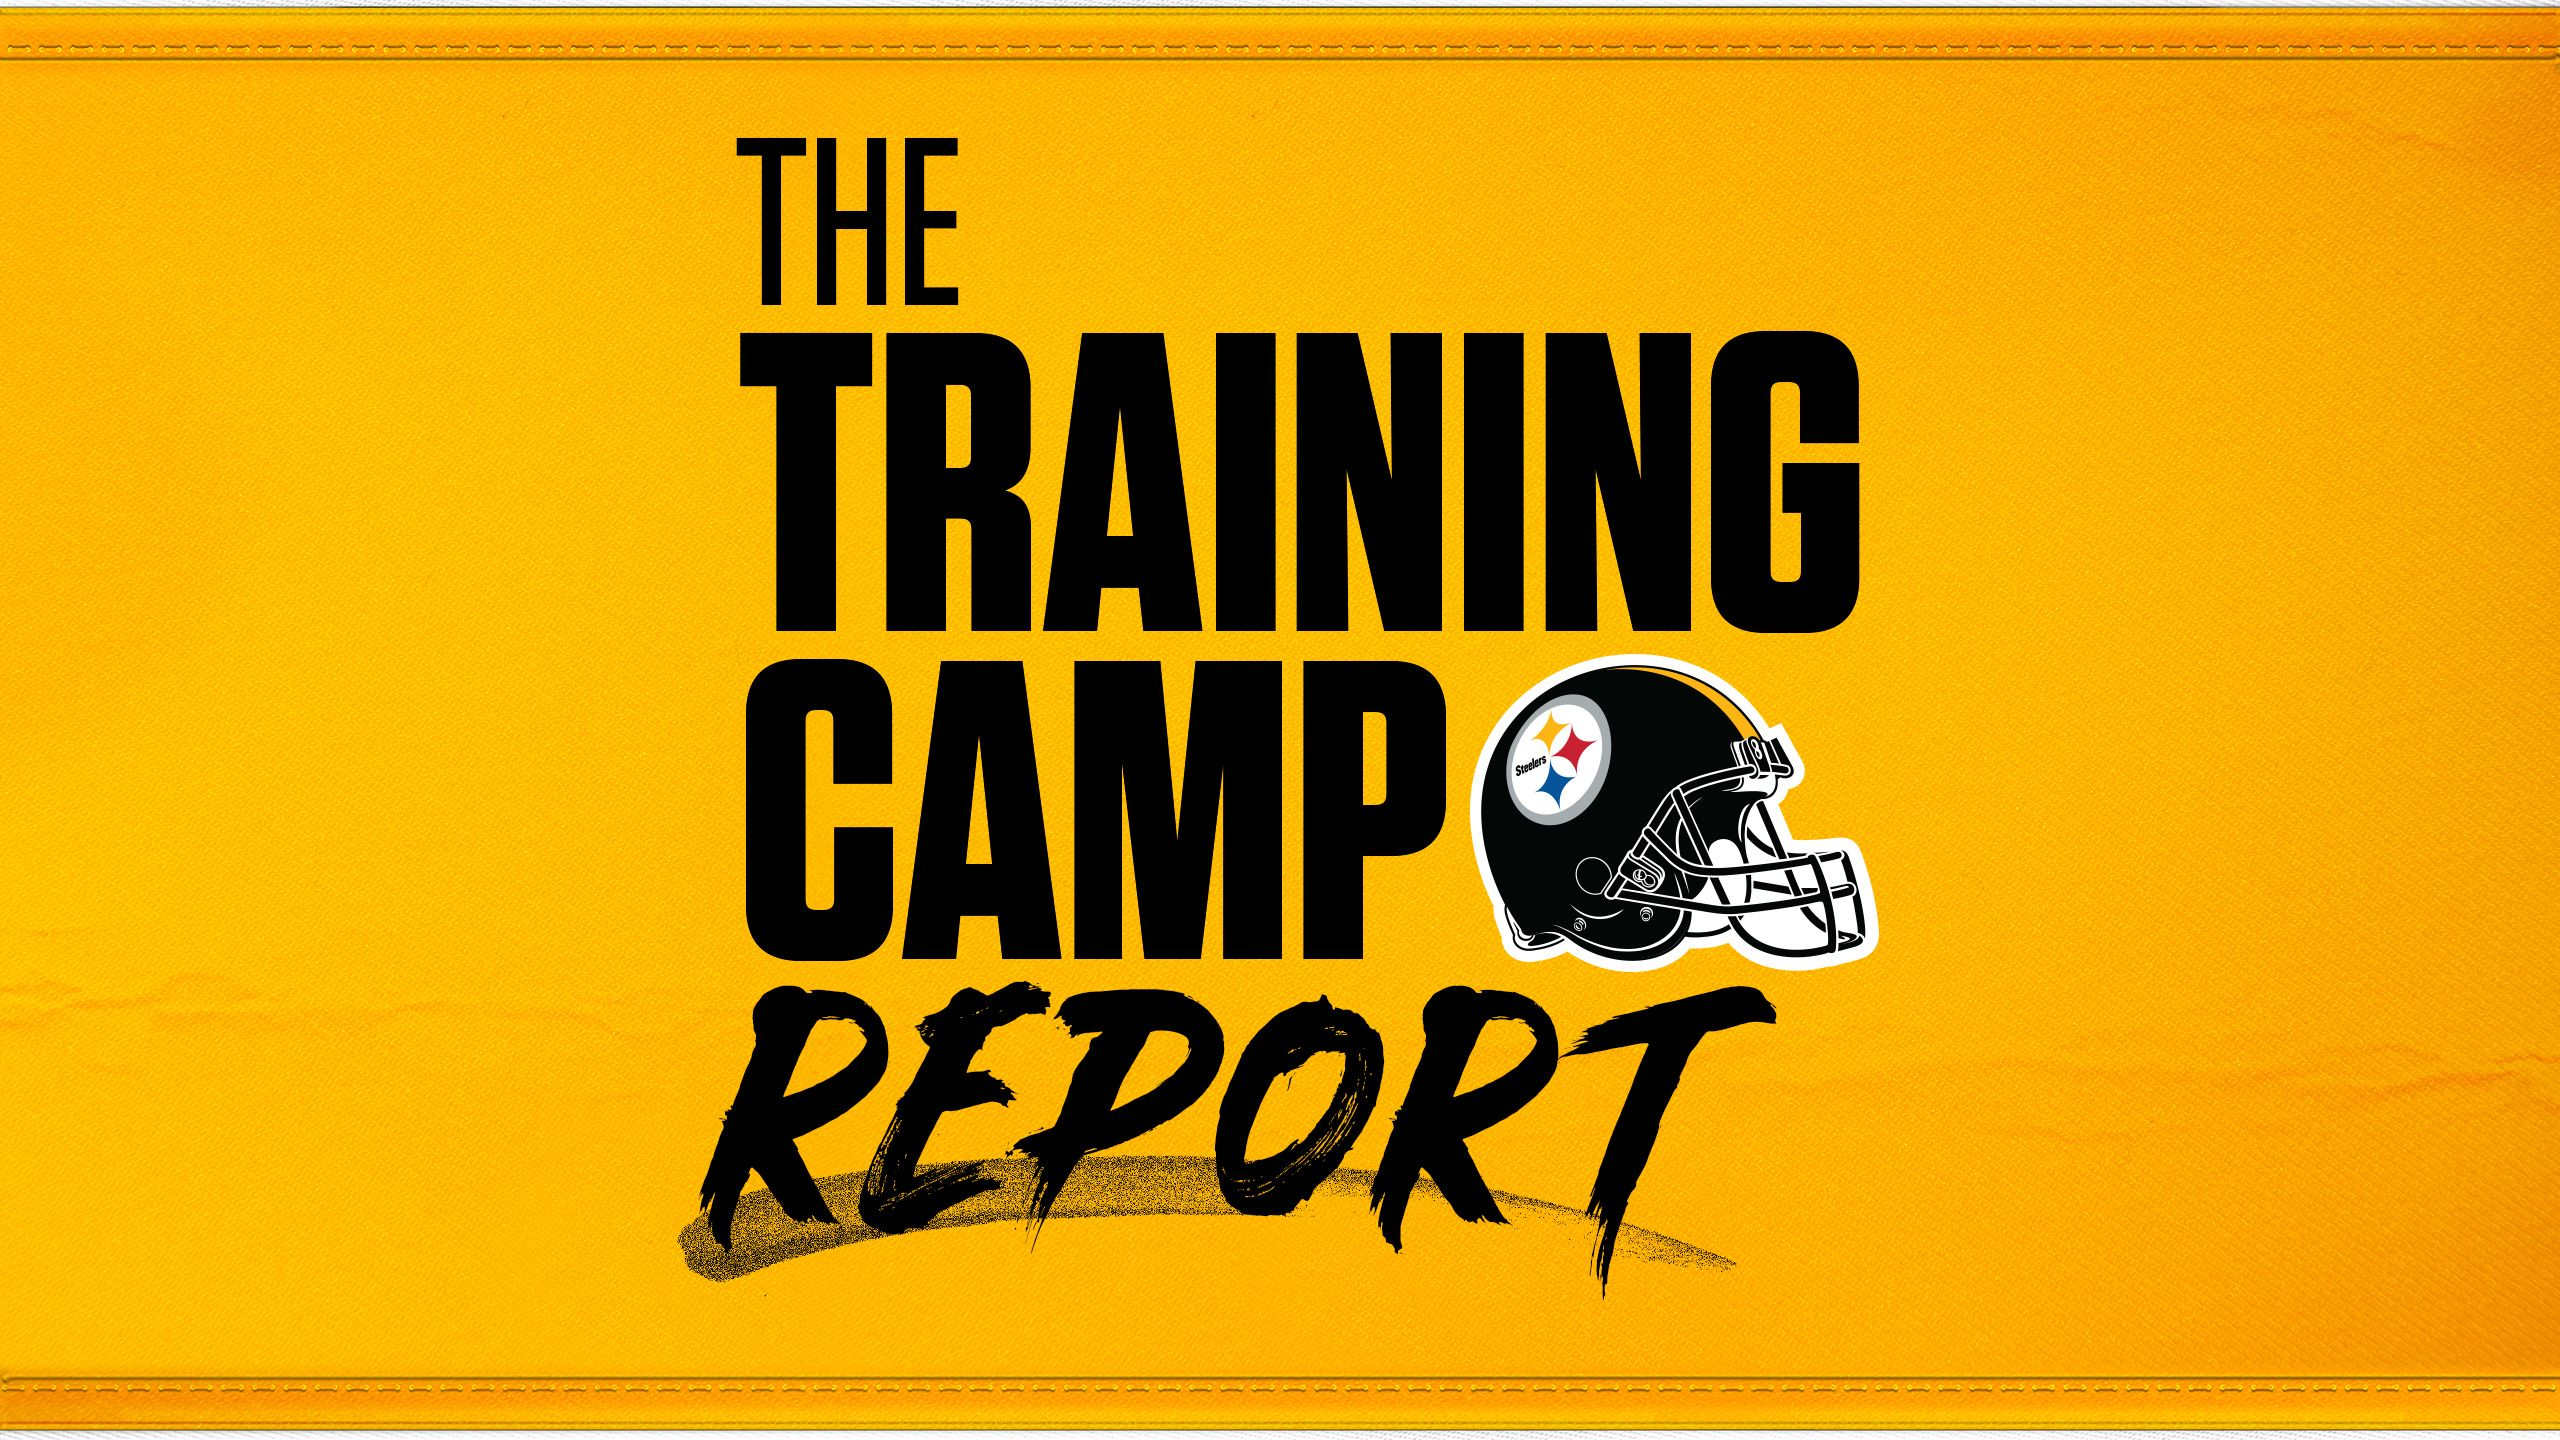 The Training Camp Report